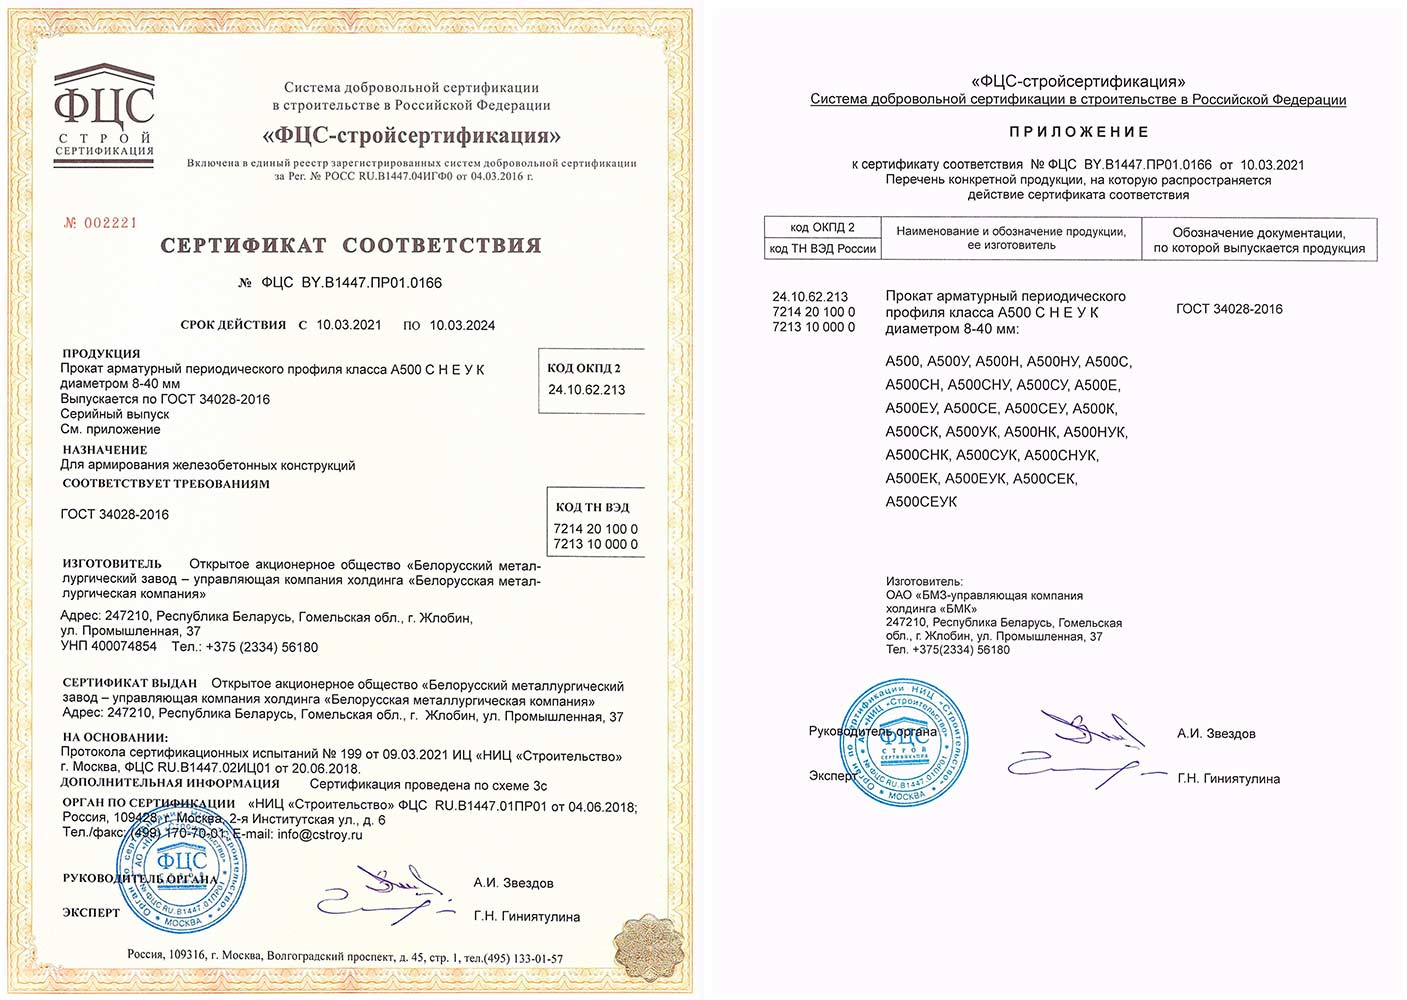 "Certificate № FCS BY.B1447З PRO 1.0059 ""FCS- stroicertification"" (Russia) for production of reinforcing bars A500C Ø8-40 mm according to requirements GOST 34028-2016  and  GOST R  52544-2006"